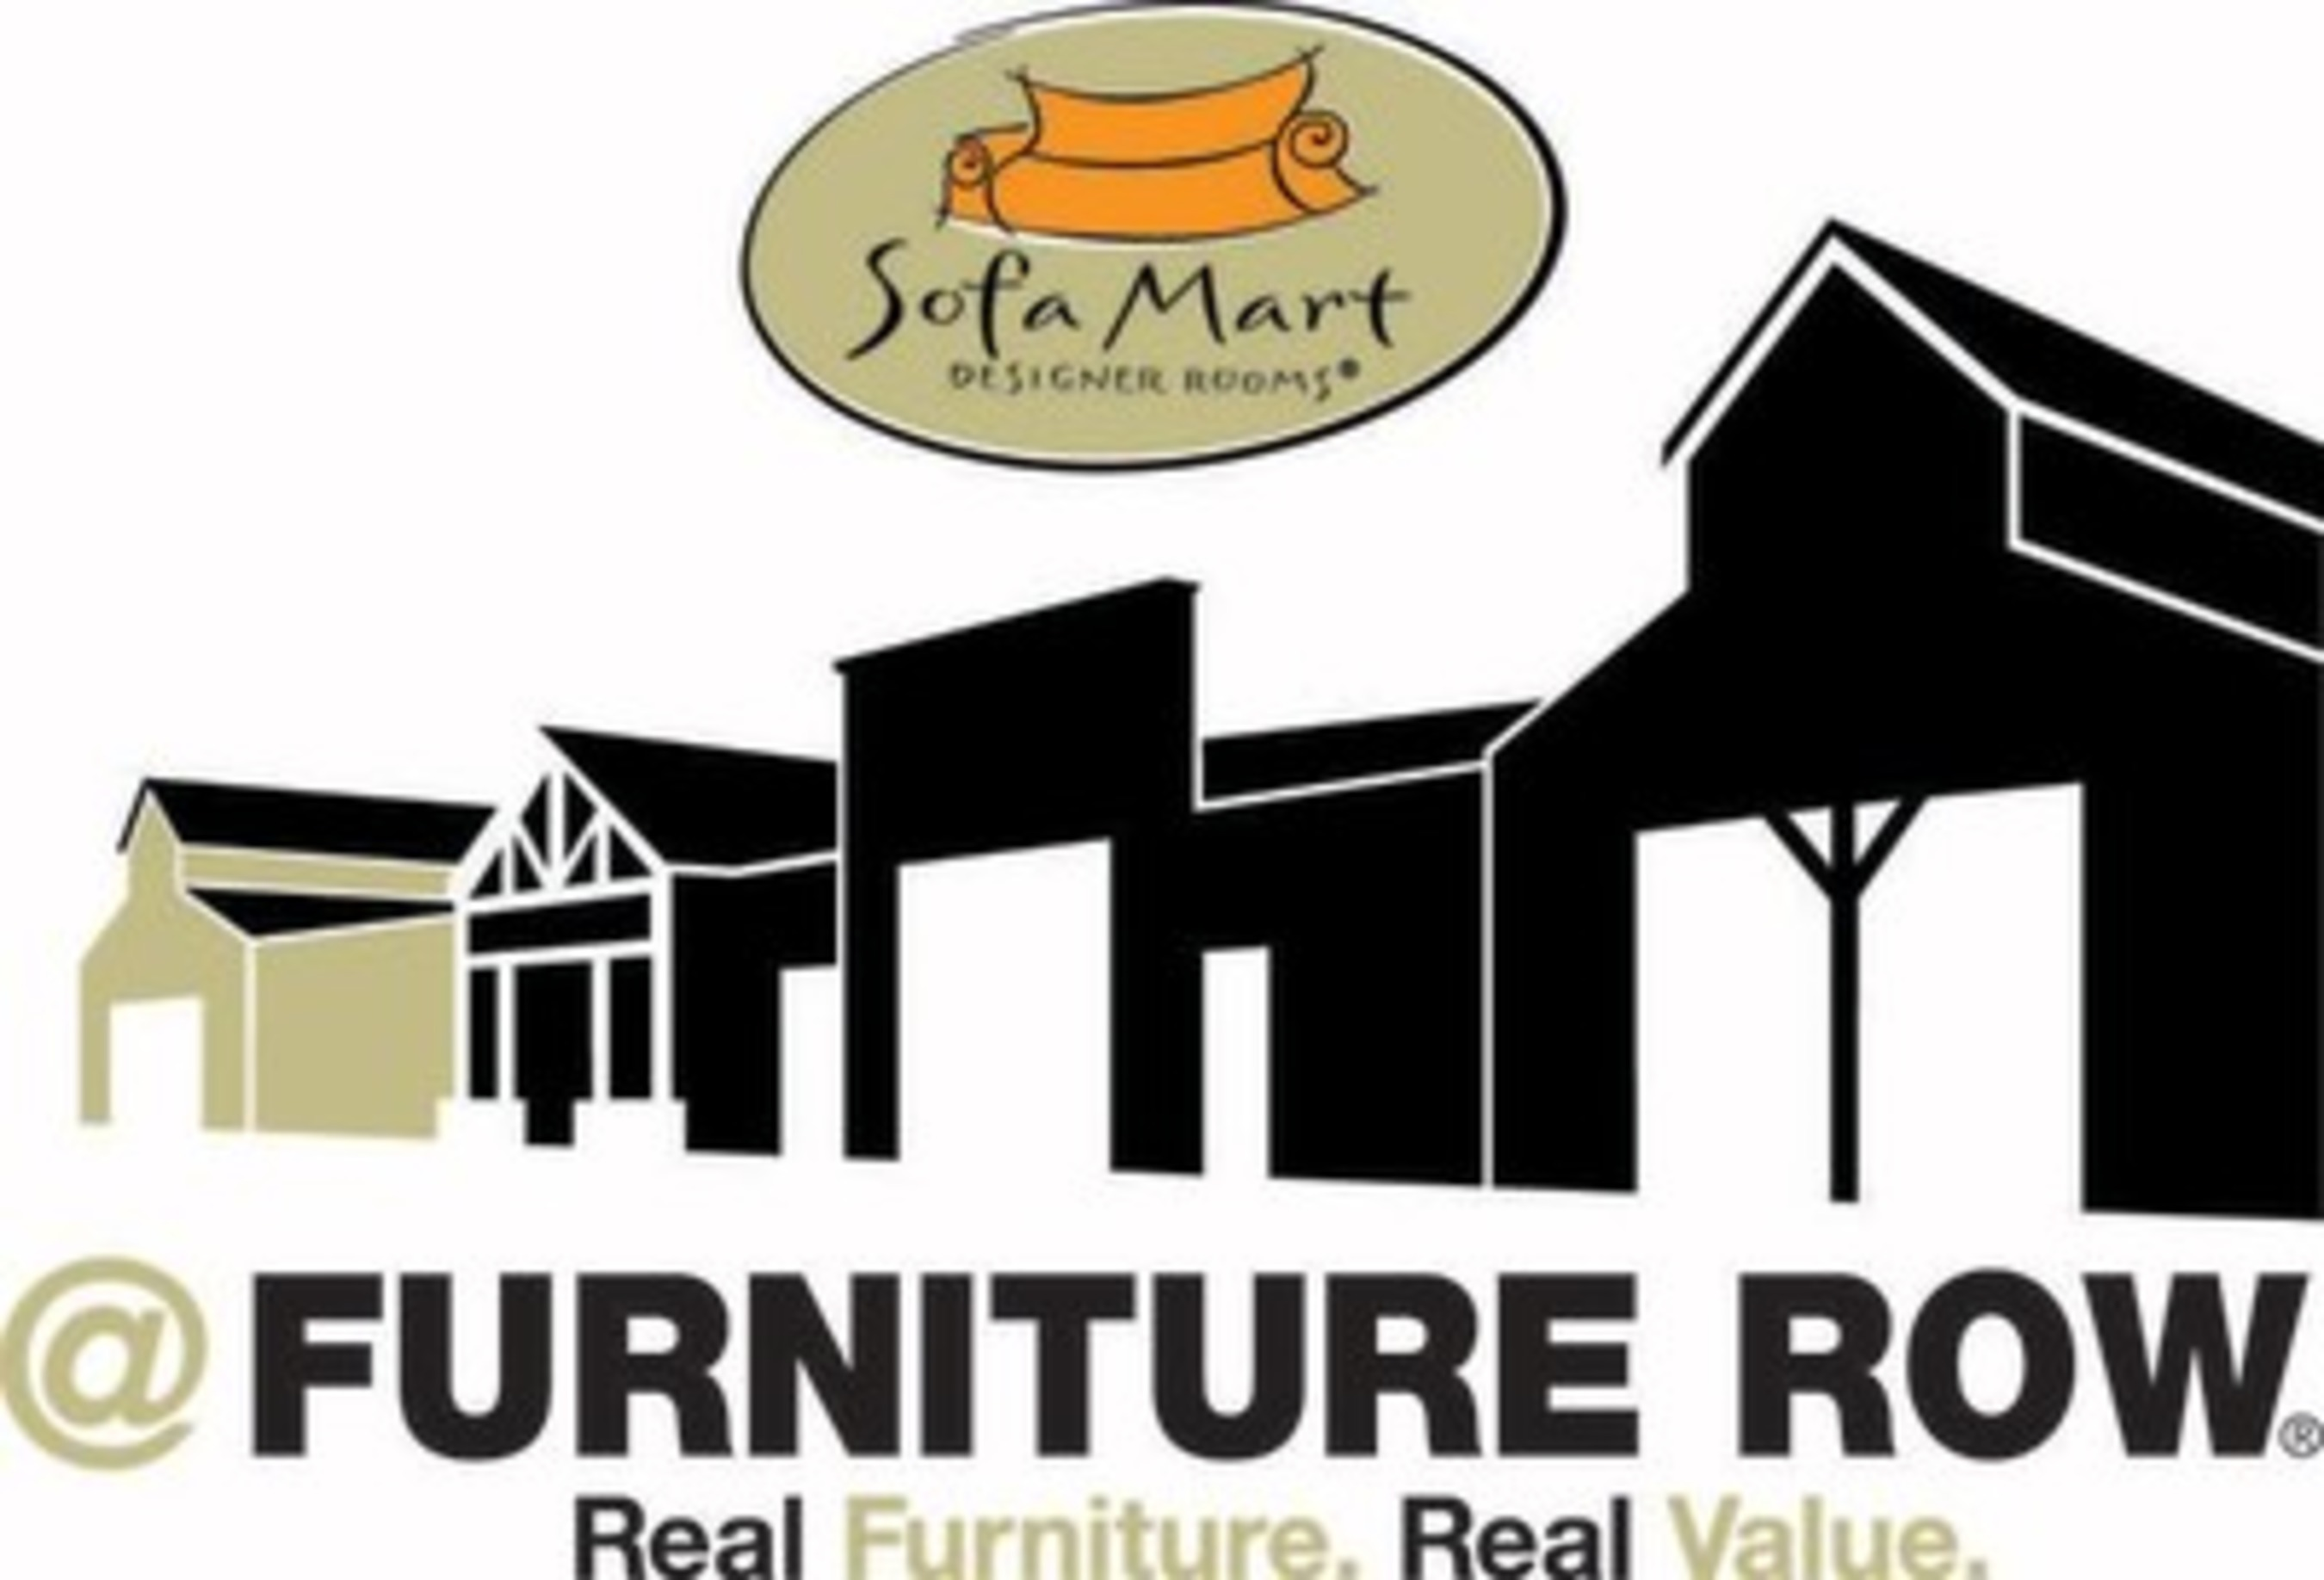 Denver Oct 16 2017 Prnewswire Hispanic Pr Wire There S More To Love Furniture Row Sofa Mart Has Remodeled Their Showroom And Updated